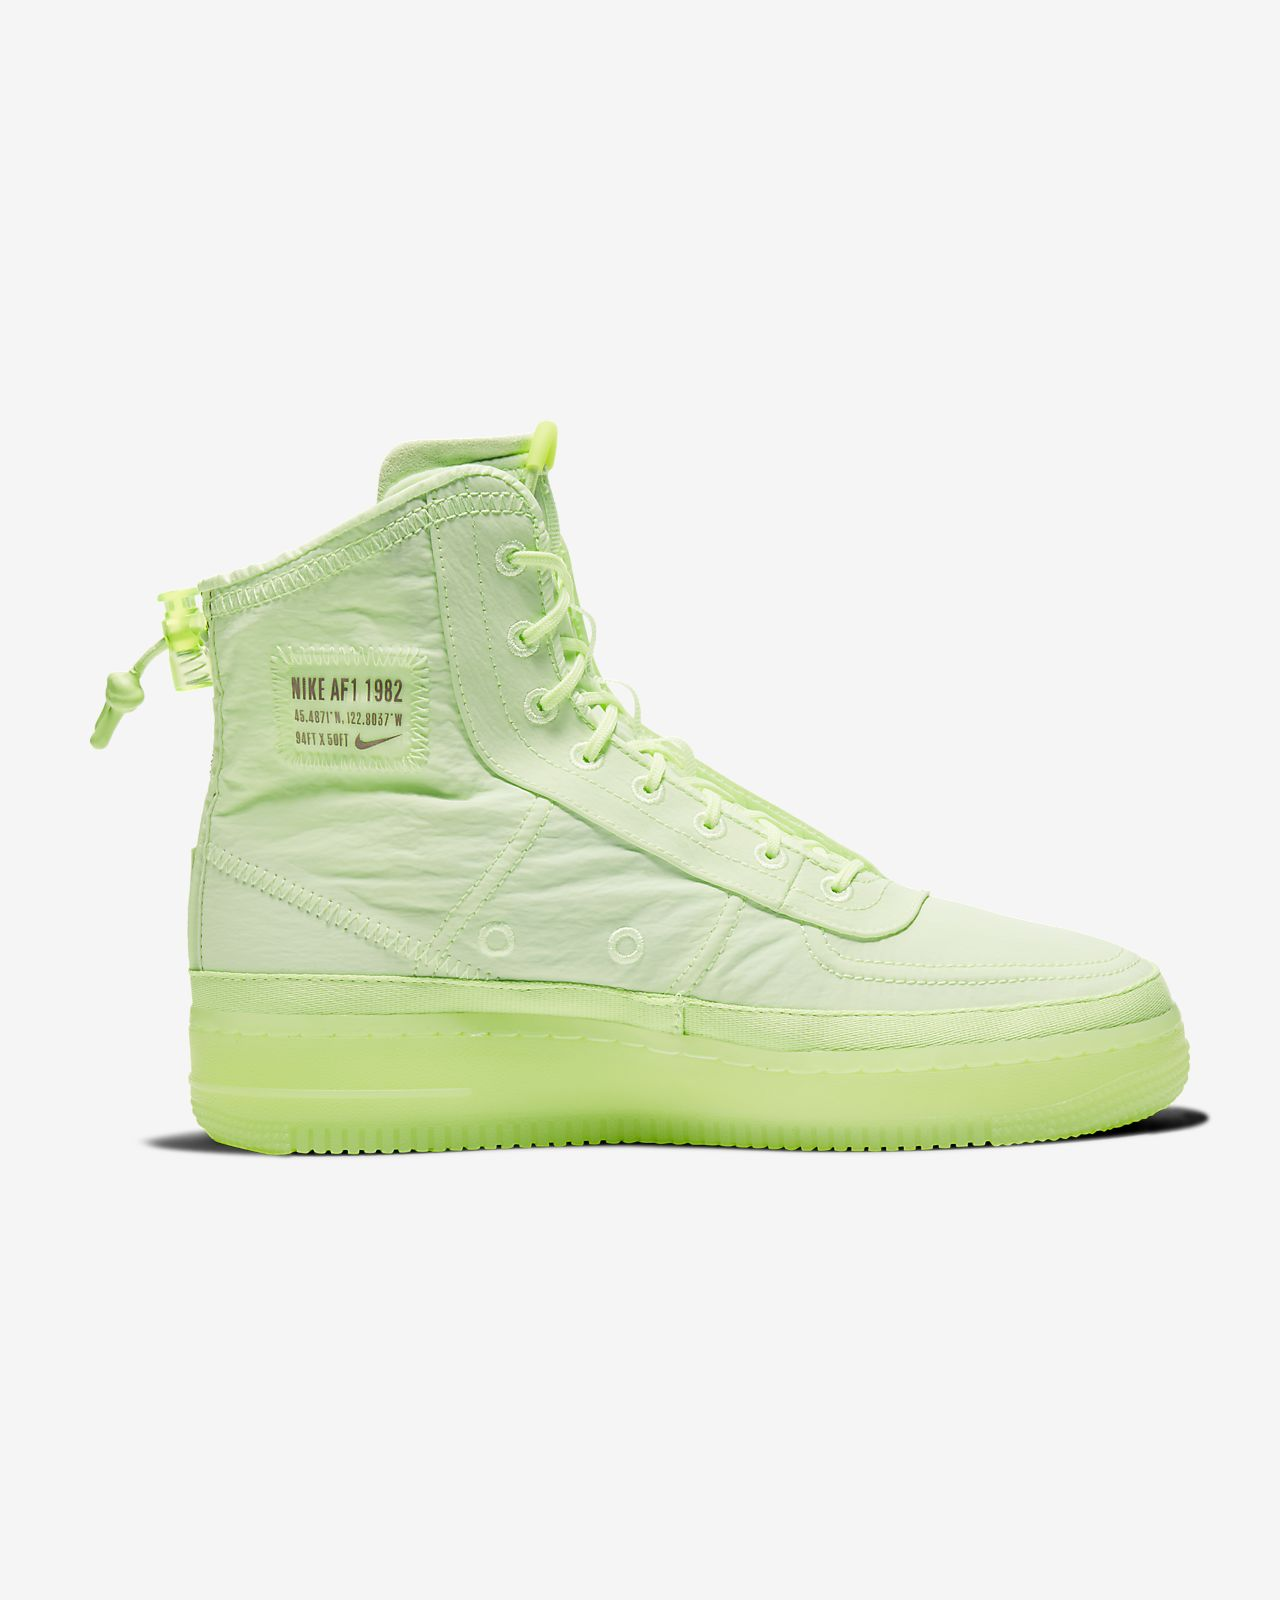 Sko Nike Air Force 1 Shell för kvinnor. Nike SE